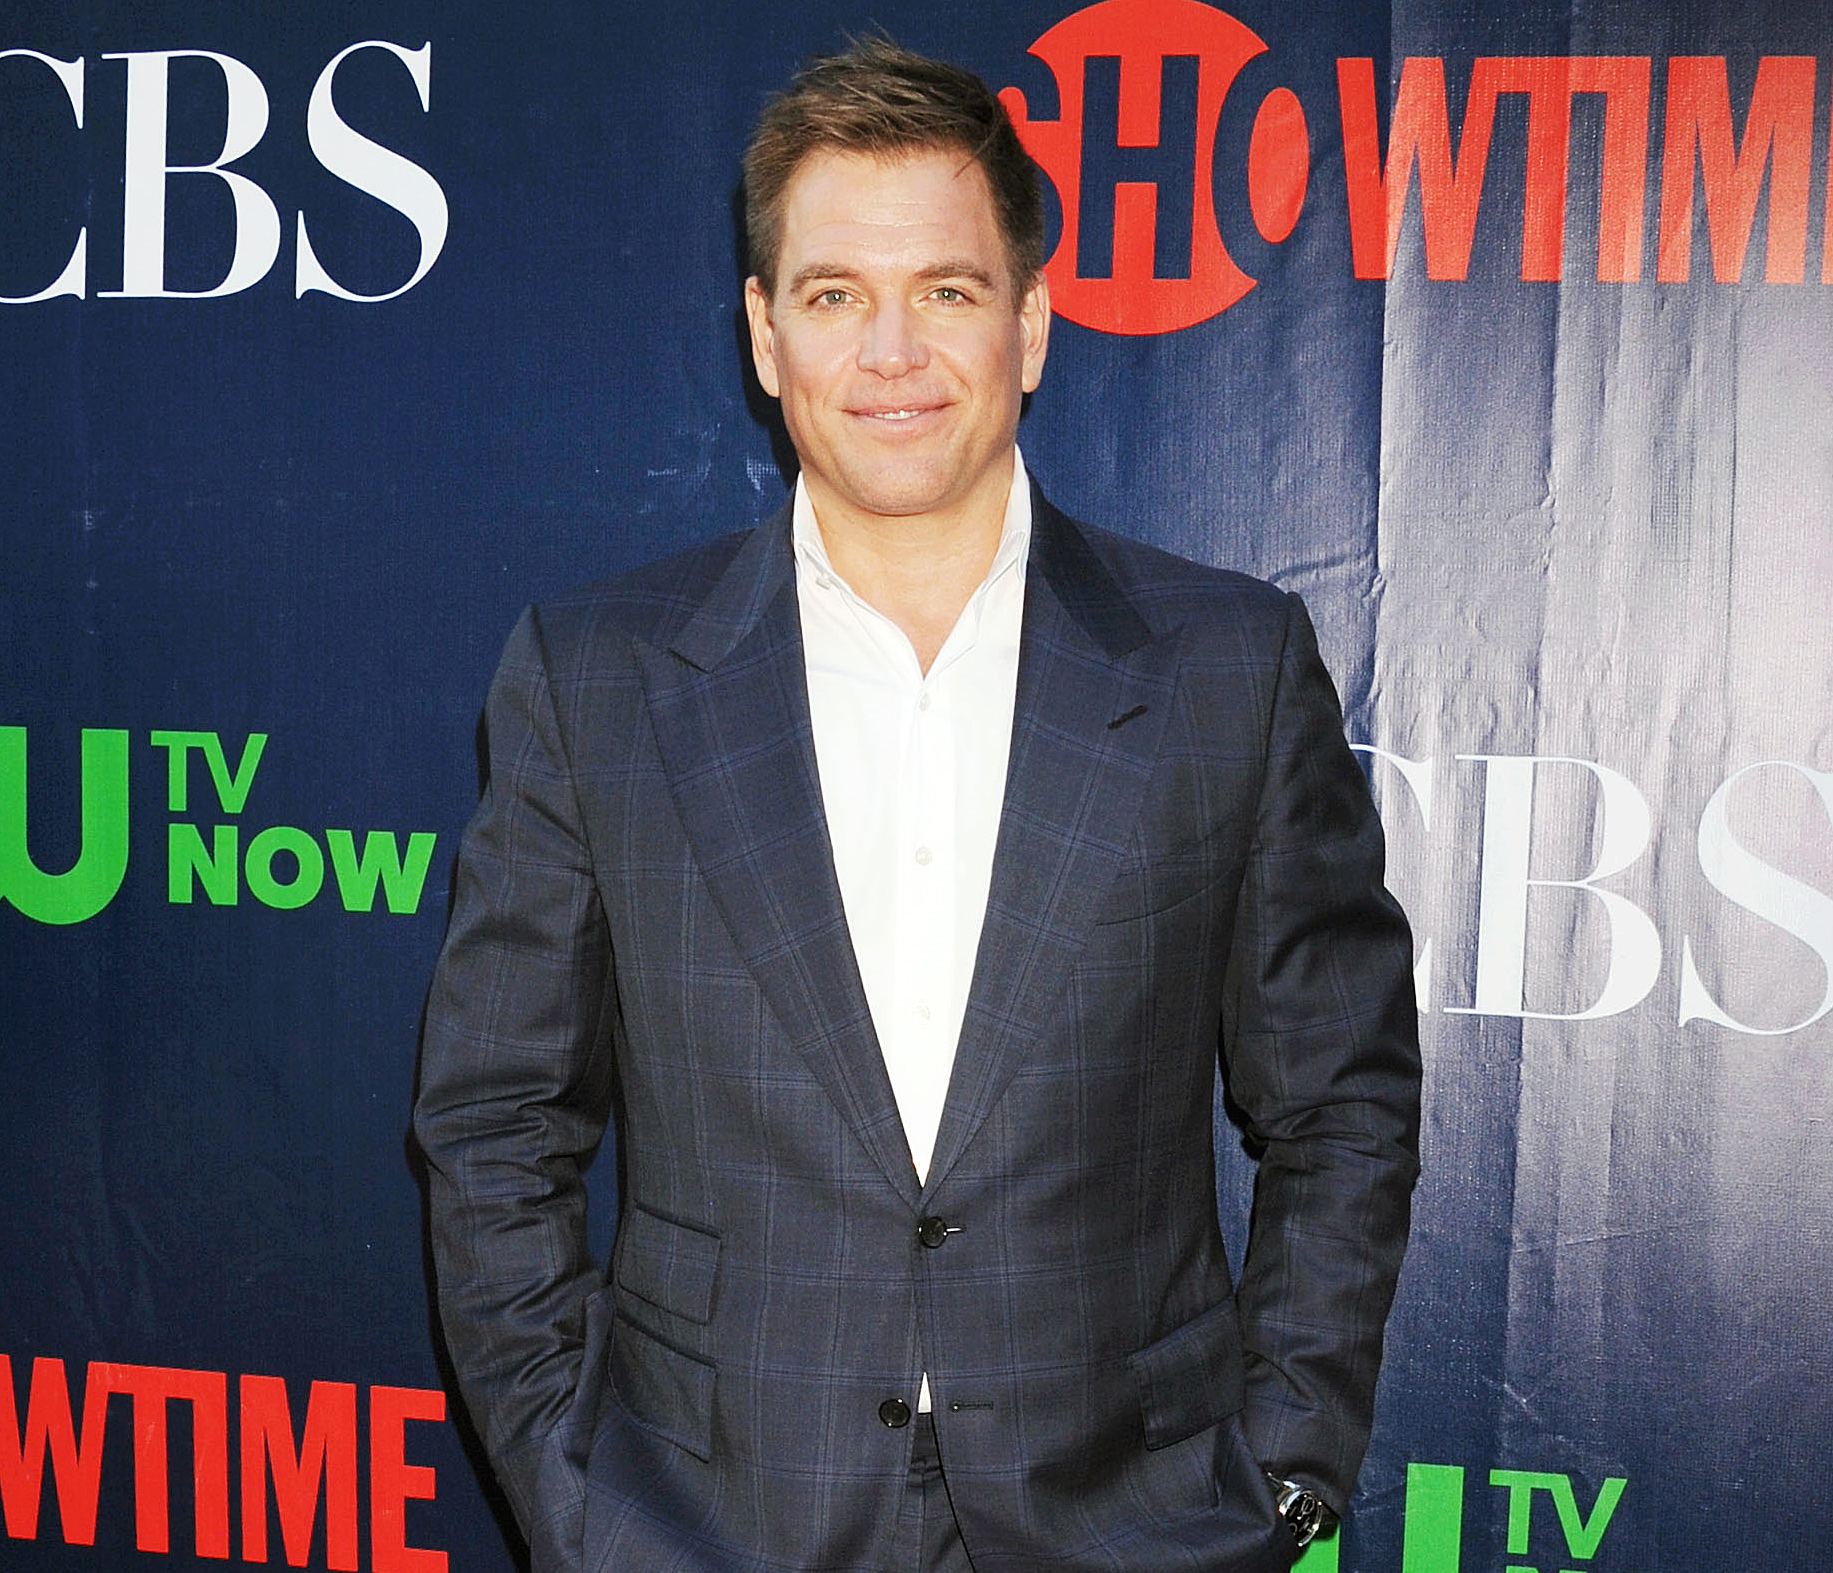 Michael Weatherly posing for a picture wearing a suit